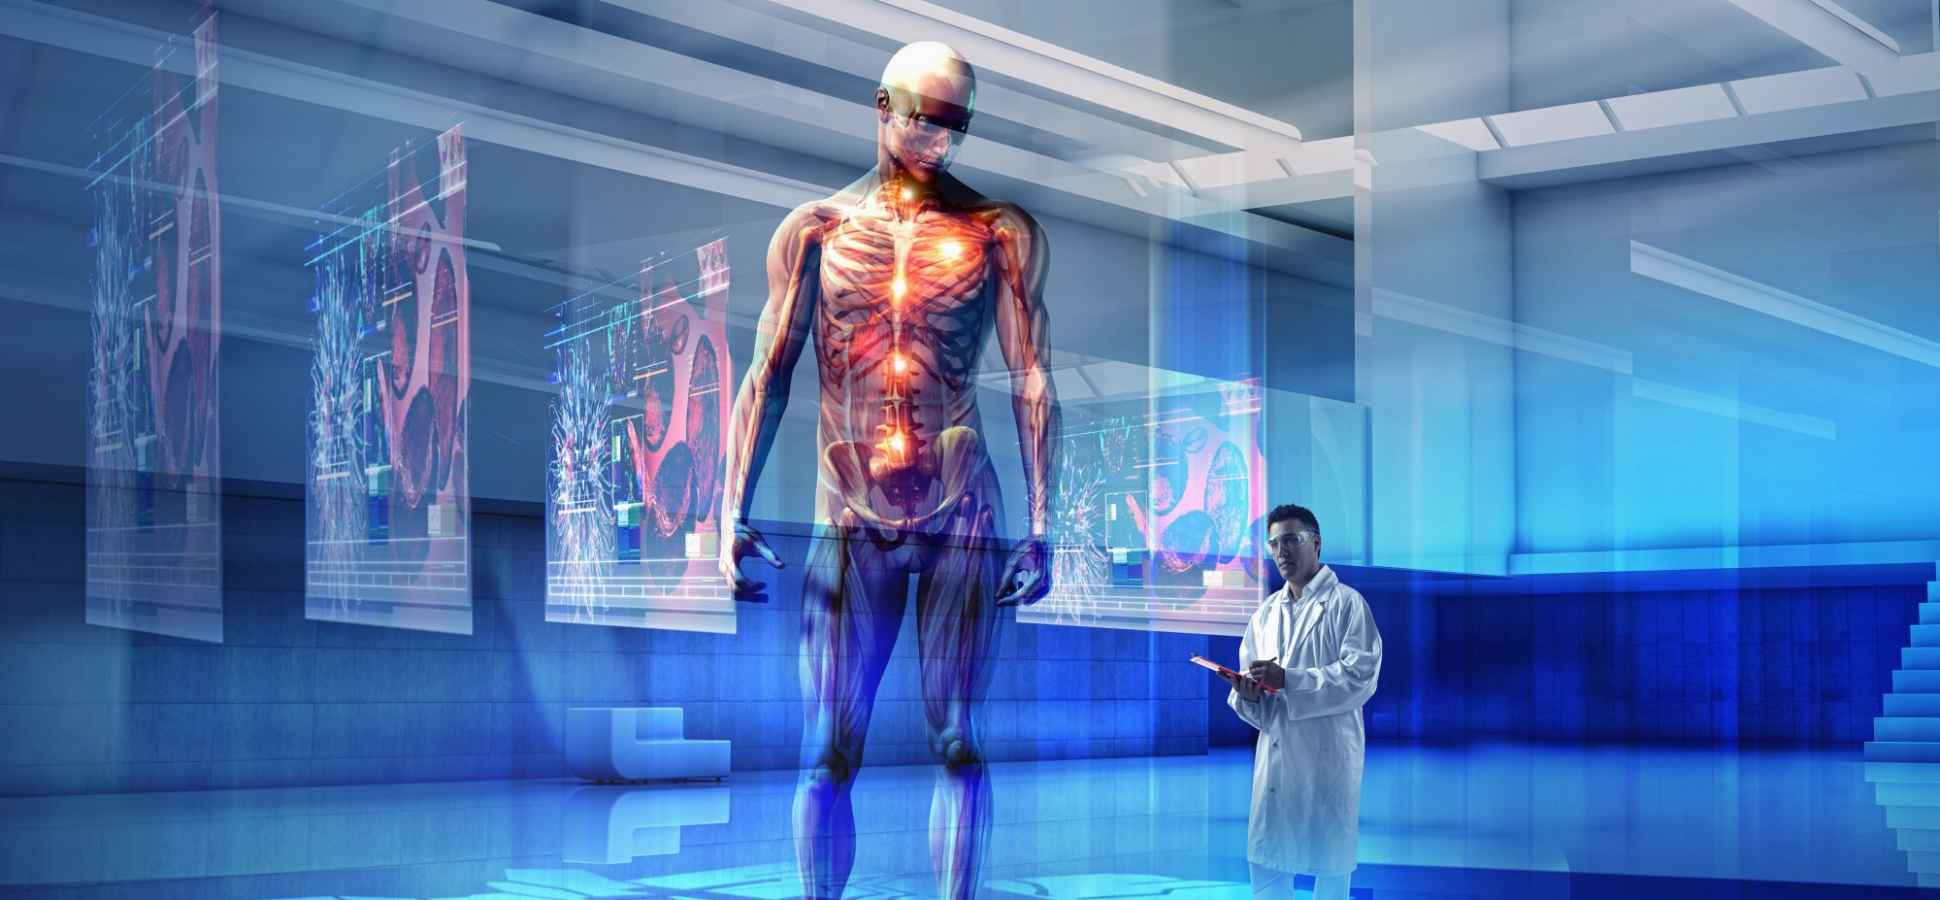 4 Disruptive Health Care Technologies That Will Change Everything